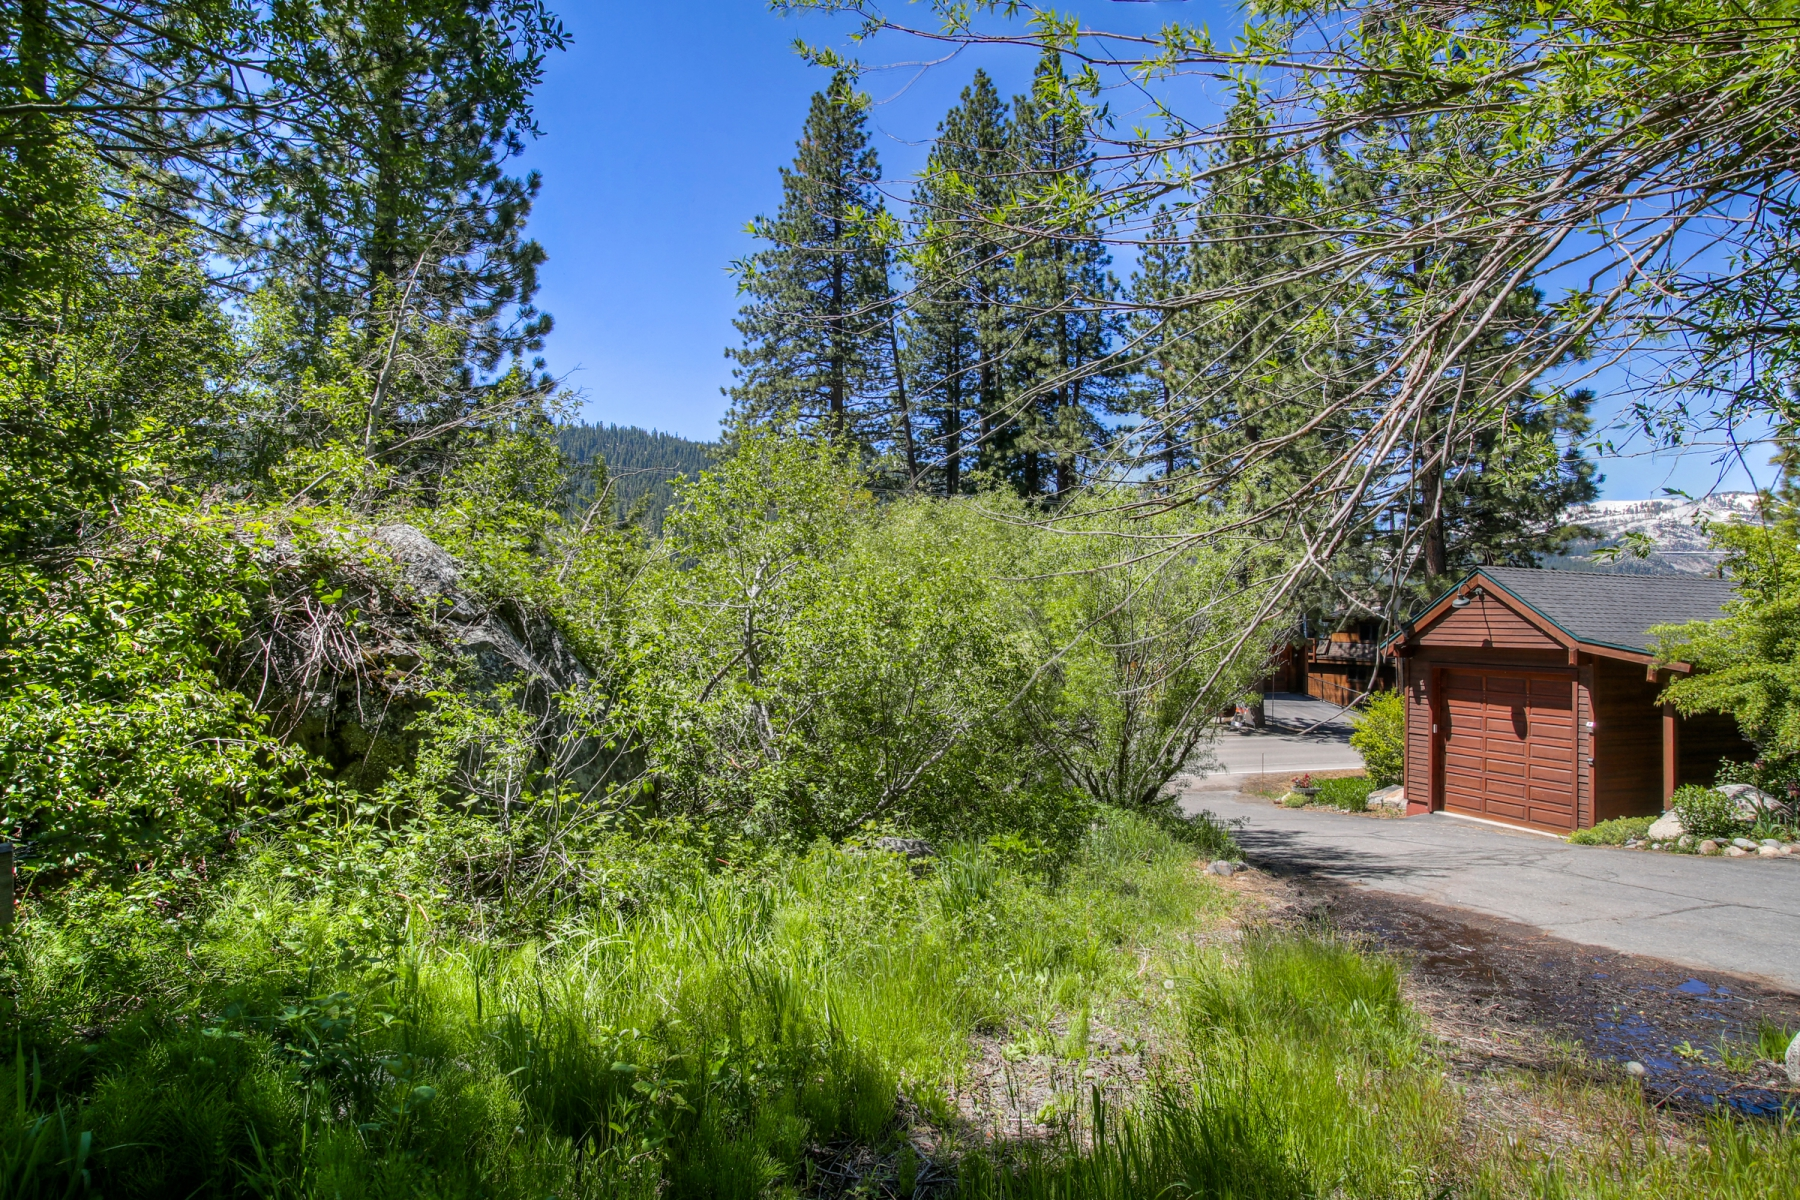 Additional photo for property listing at 13794 Donner Pass Road, Truckee, California 96161 13794 Donner Pass Road Truckee, California 96161 United States